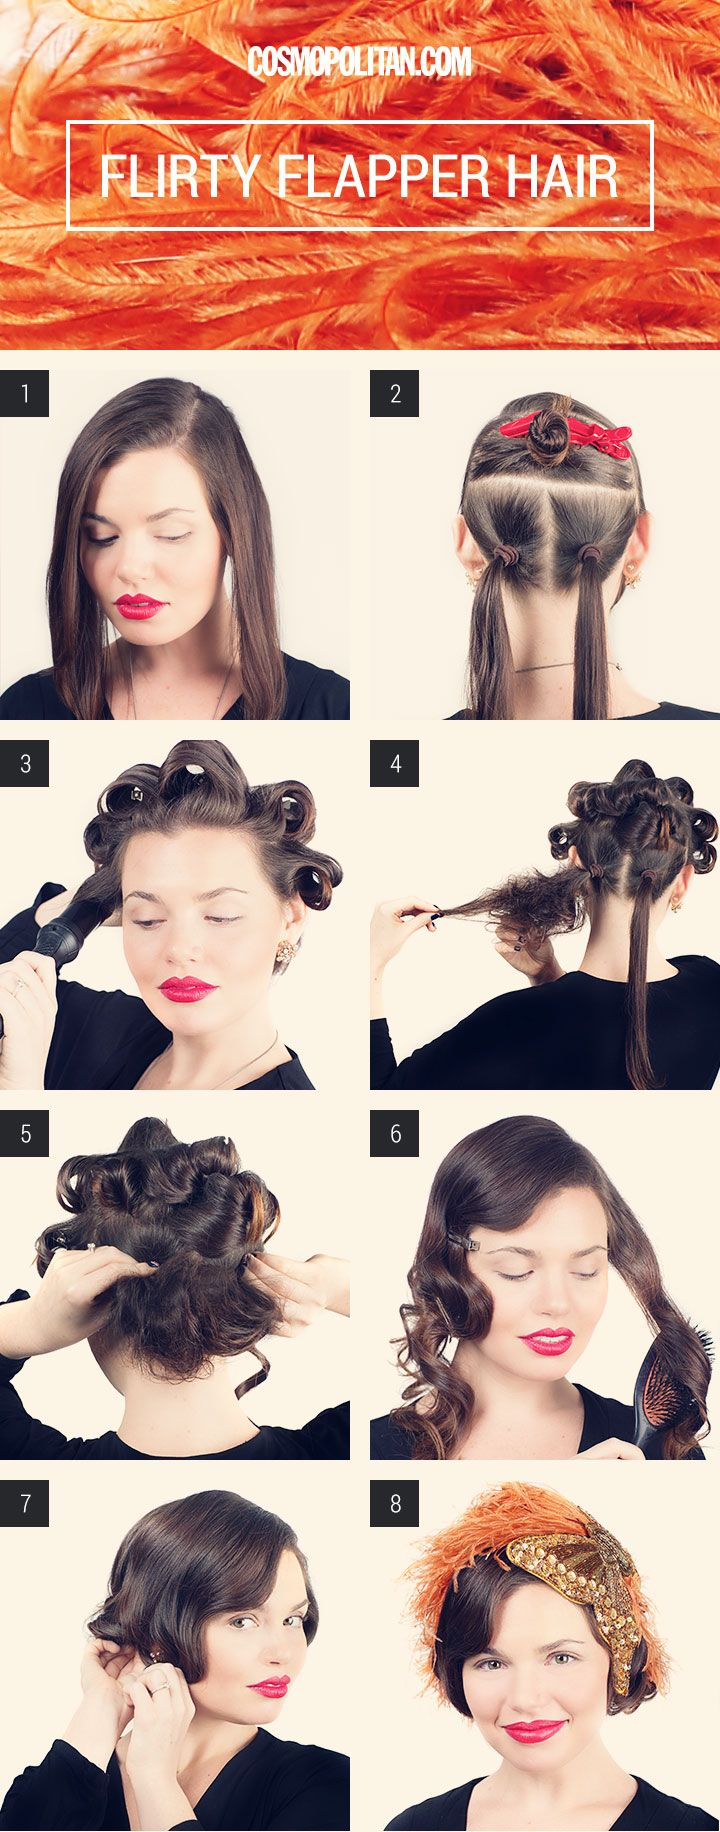 Step-by-step instructions for a faux-bob / flapper hair #Halloween http://www.cosmopolitan.com/hairstyles-beauty/beauty-blog/flapper-inspired-hair-tutuorial-for-halloween